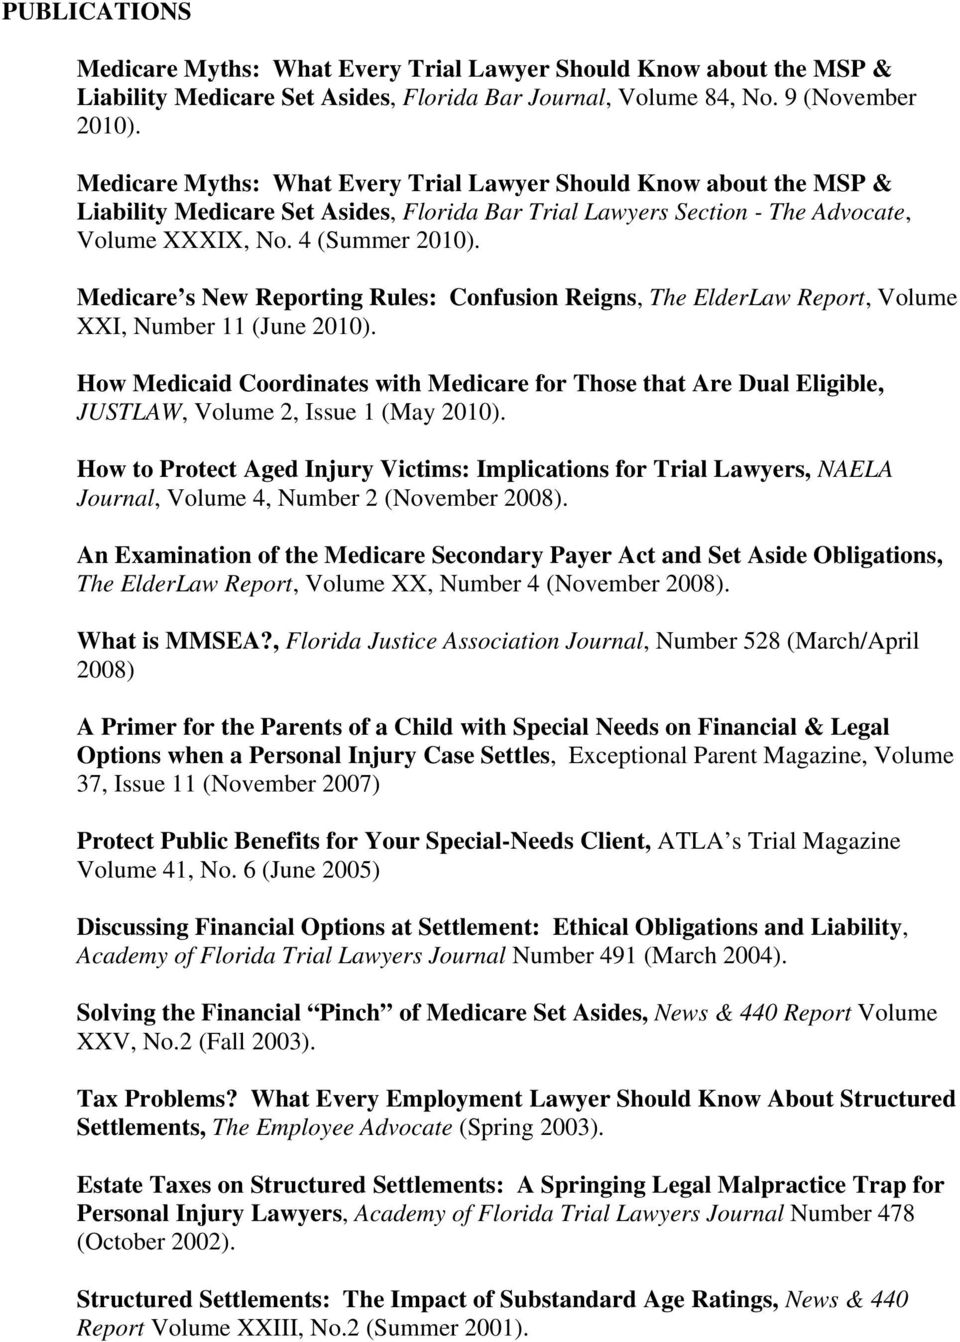 Medicare s New Reporting Rules: Confusion Reigns, The ElderLaw Report, Volume XXI, Number 11 (June 2010).